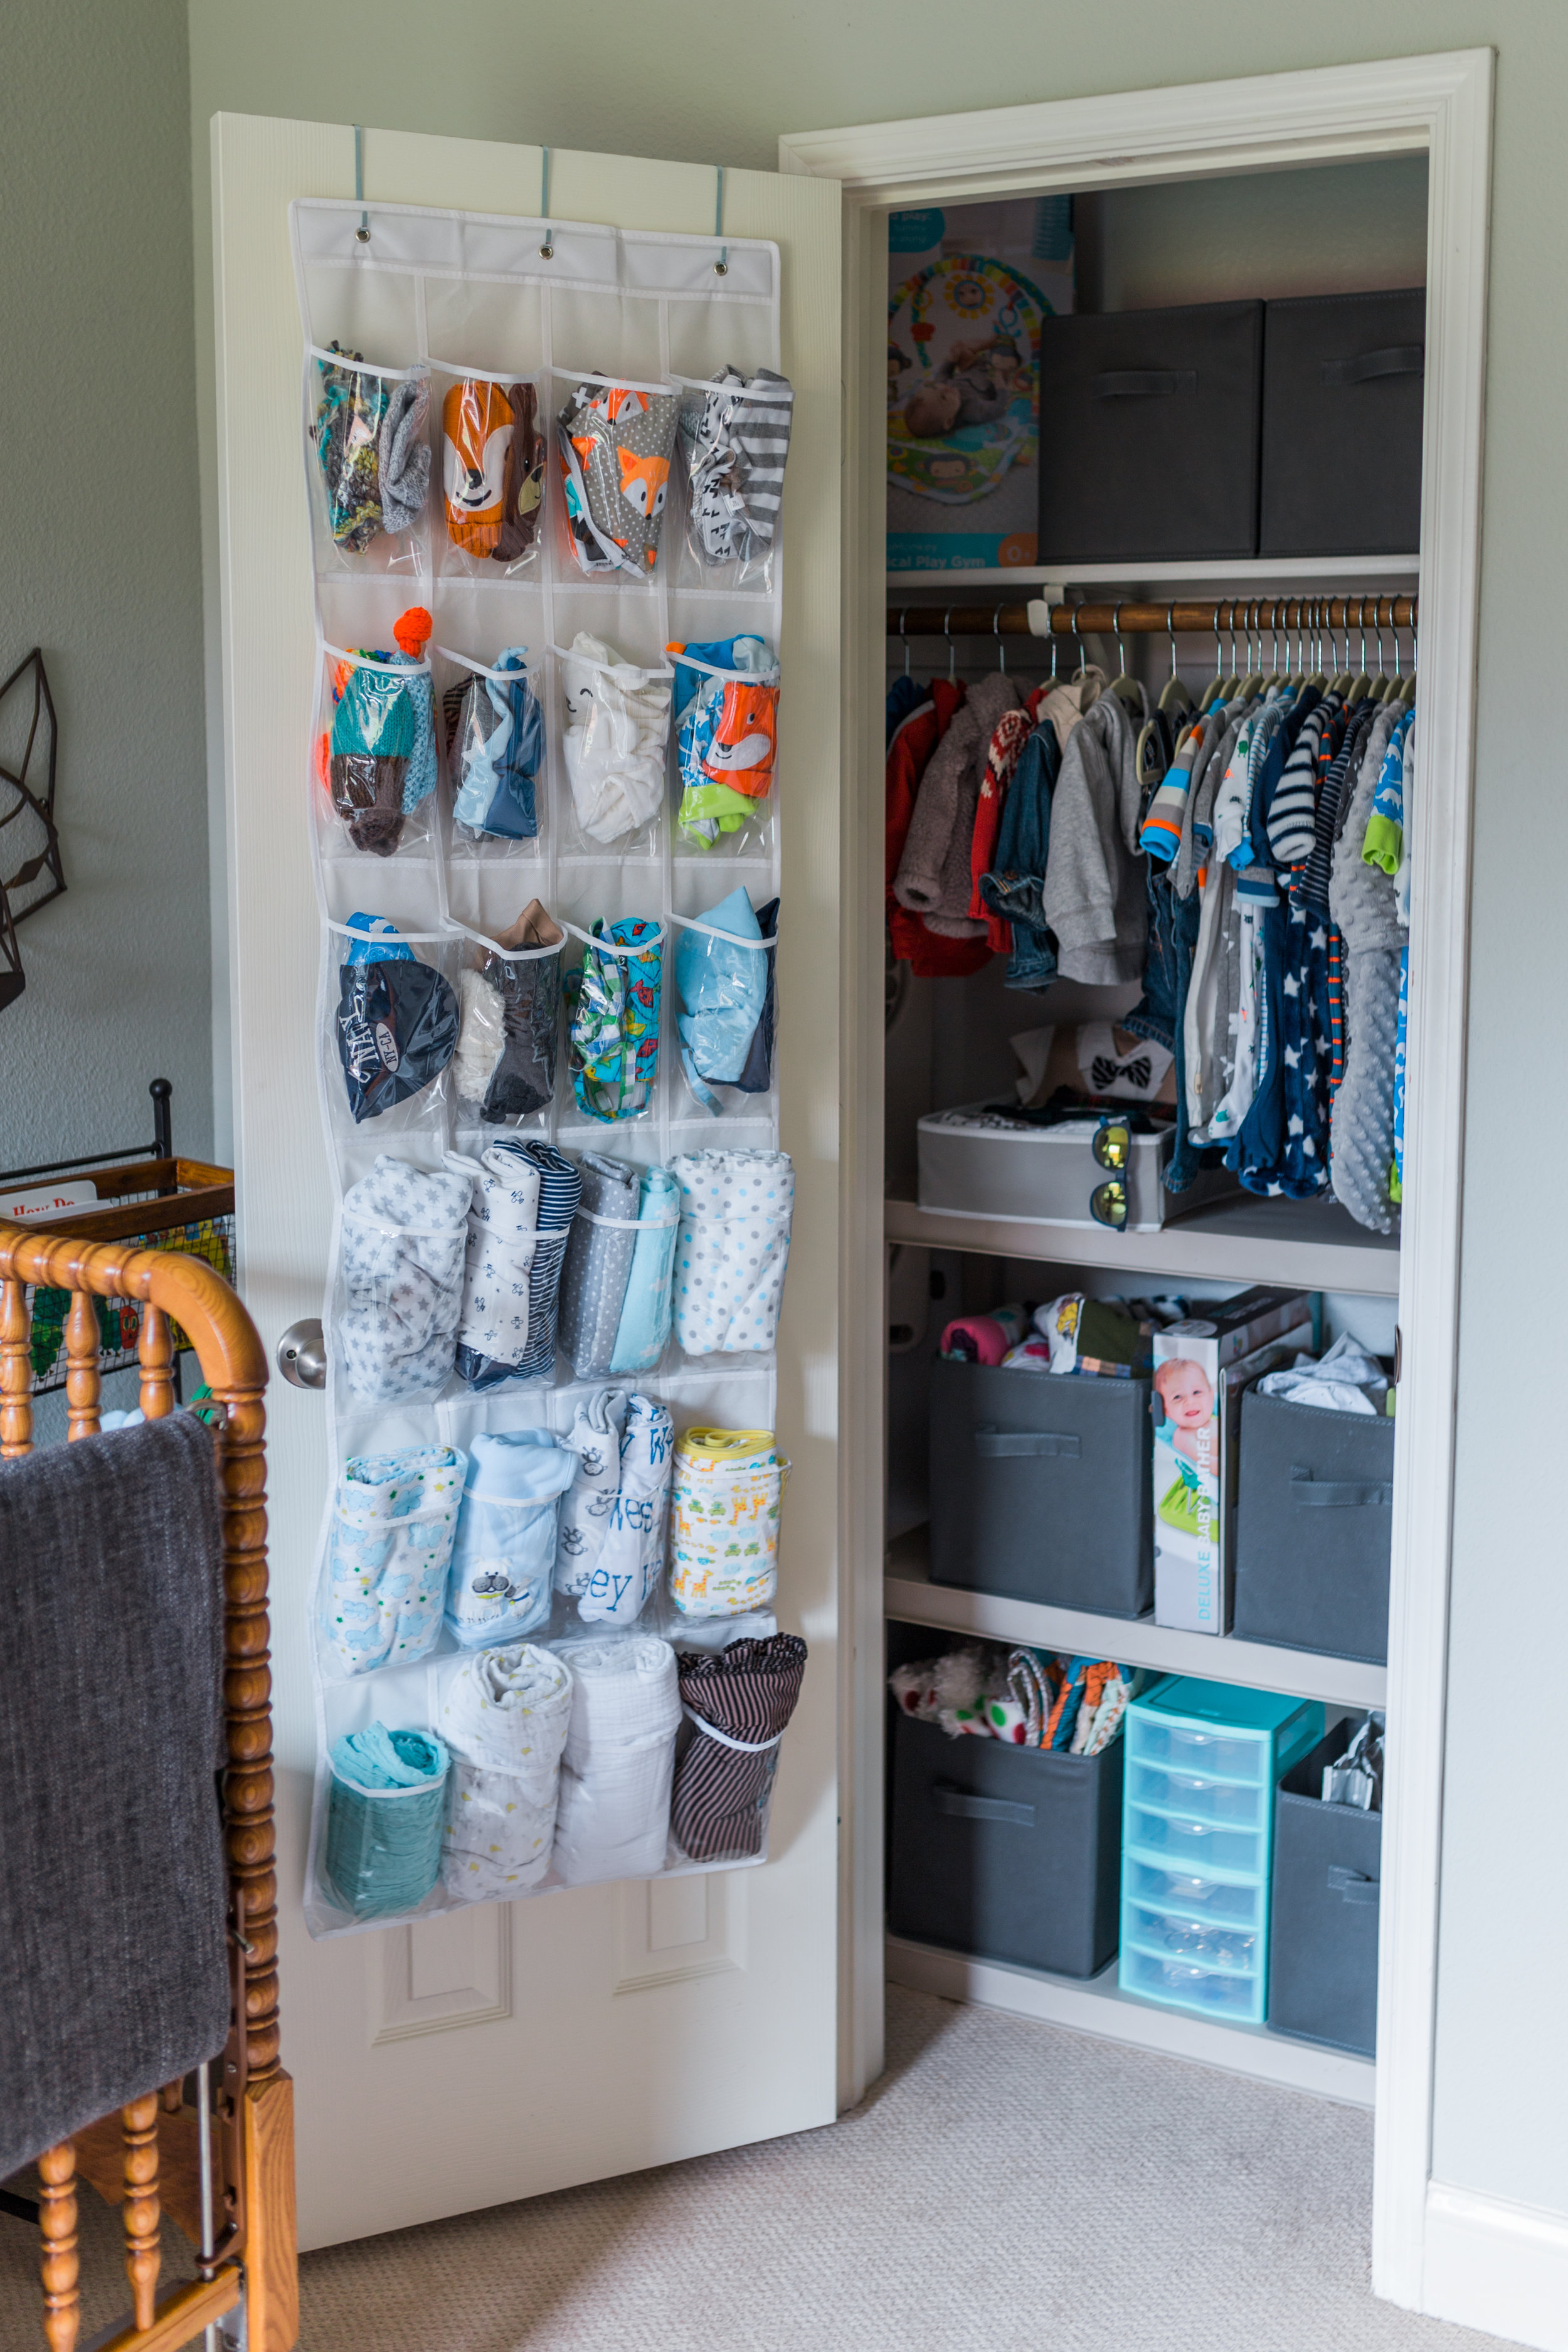 The closets in this house are SMALL, so some creative organization was needed. That's a closet door shoe rack!Thanks Pinterest!